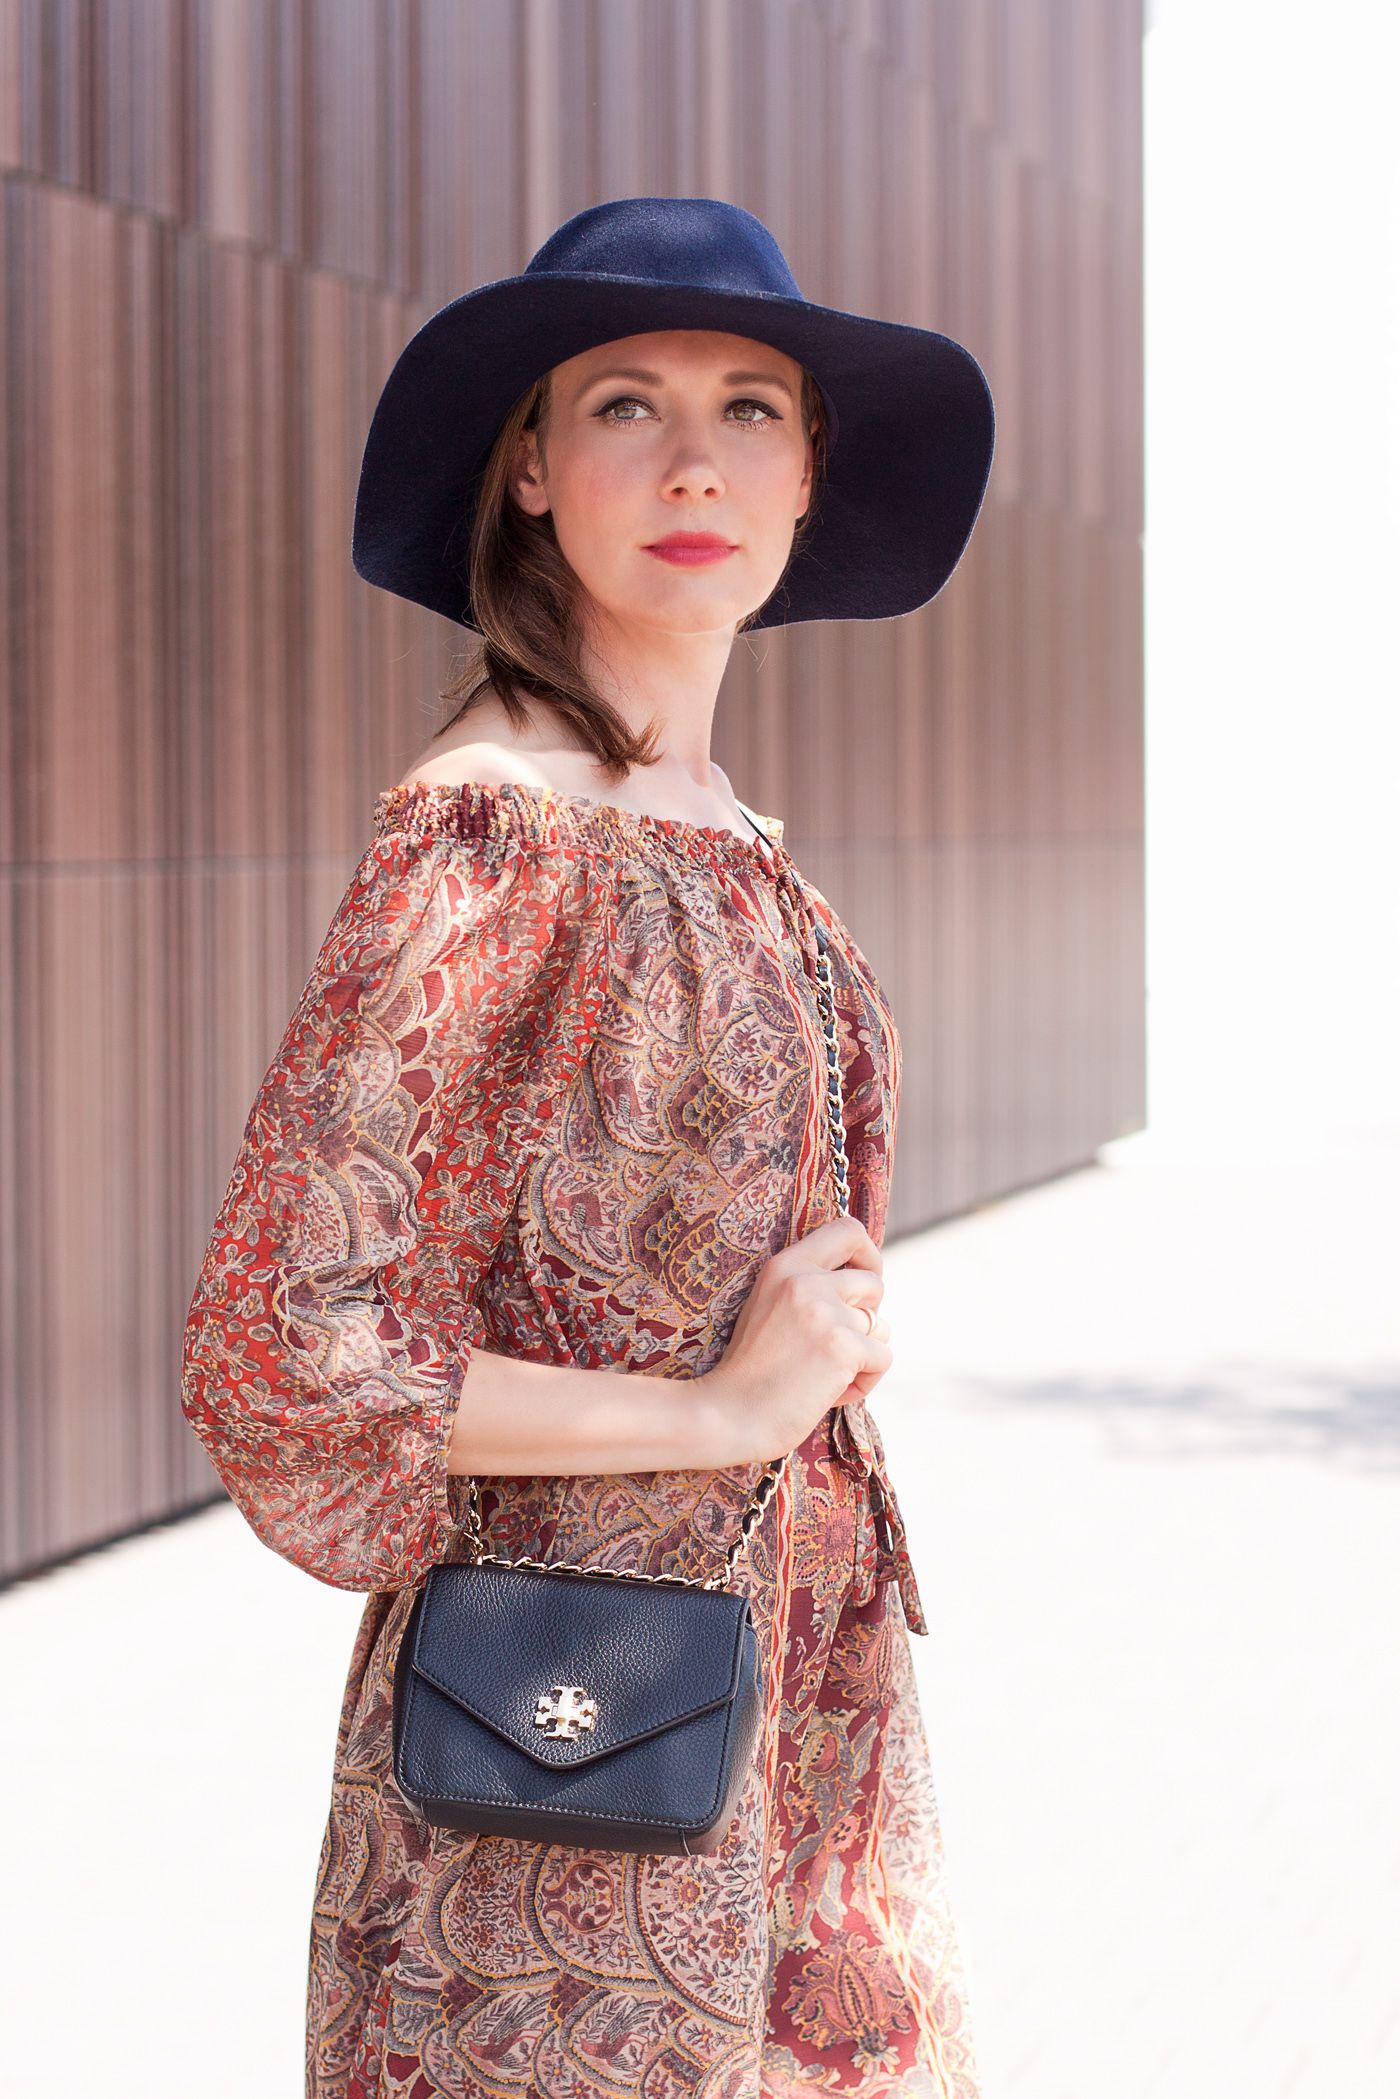 Outfitpost 'Bohème Chic' with a print dress, Heels, a Tory Burch bag and my favorite hat.